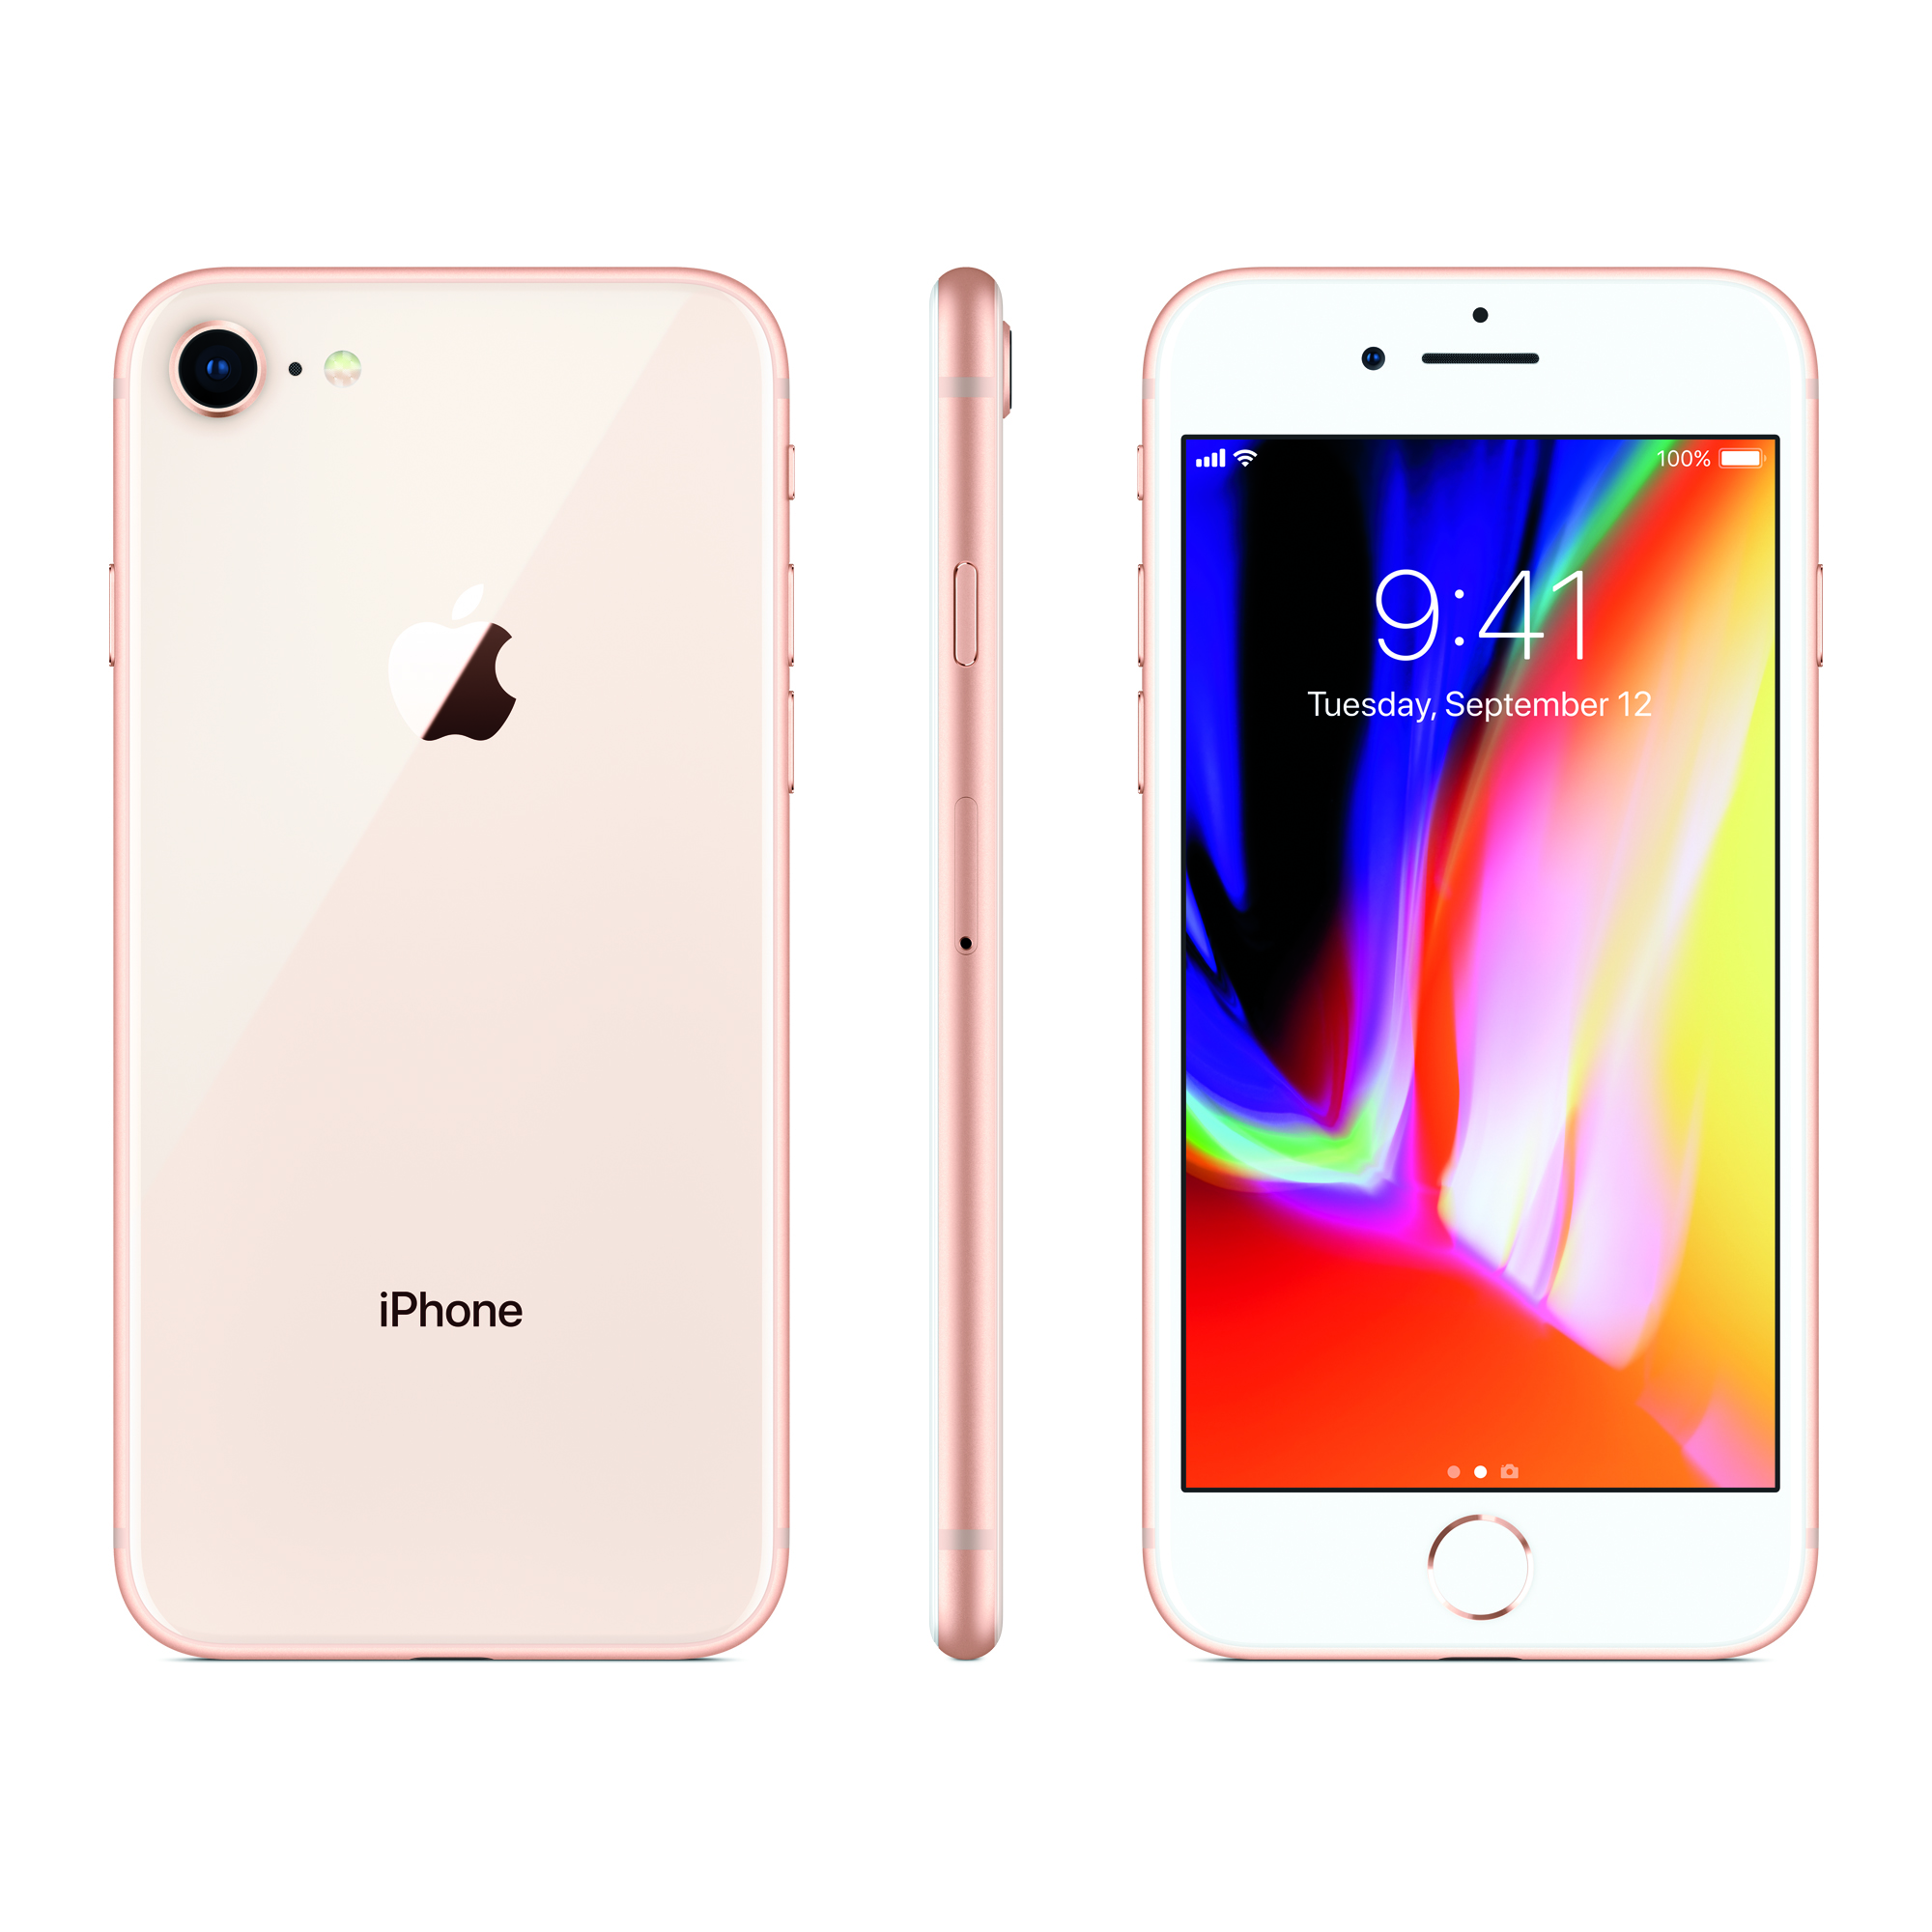 Total Wireless Apple iPhone 8 with 64GB Prepaid Smartphone, Gold